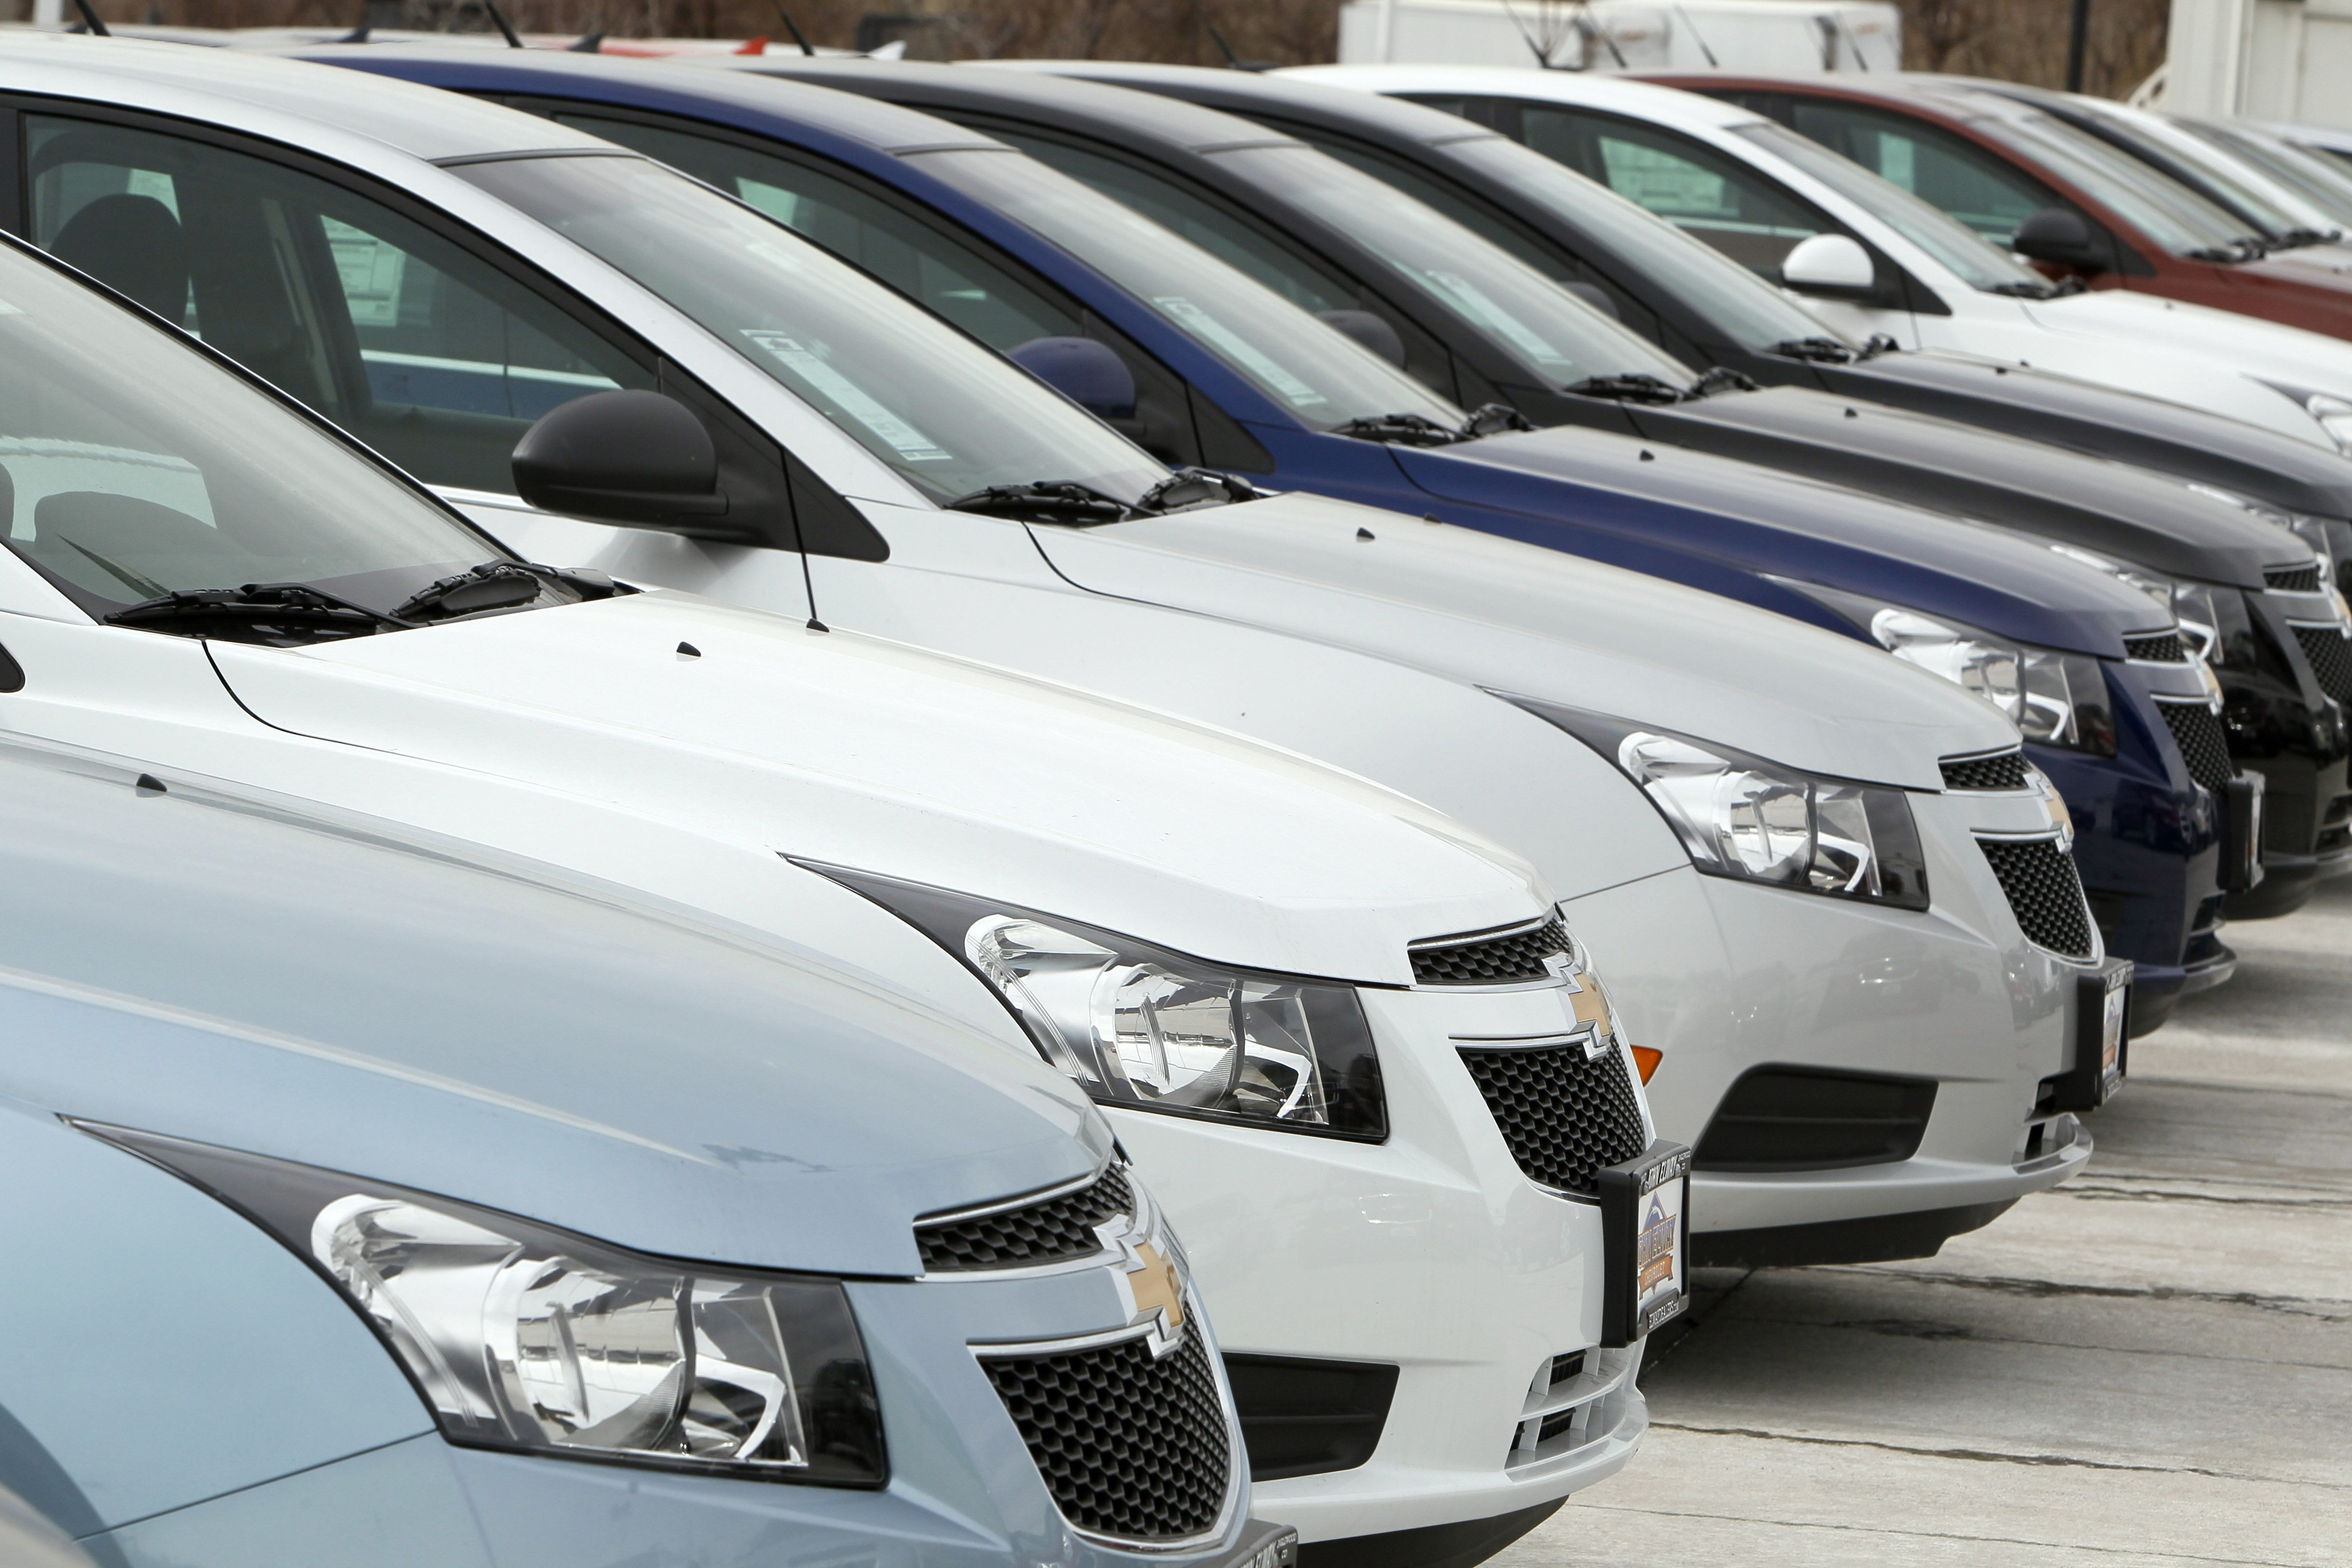 Trump Tweets Gm Should Make Cruze Model In U S Or Pay Tax Used